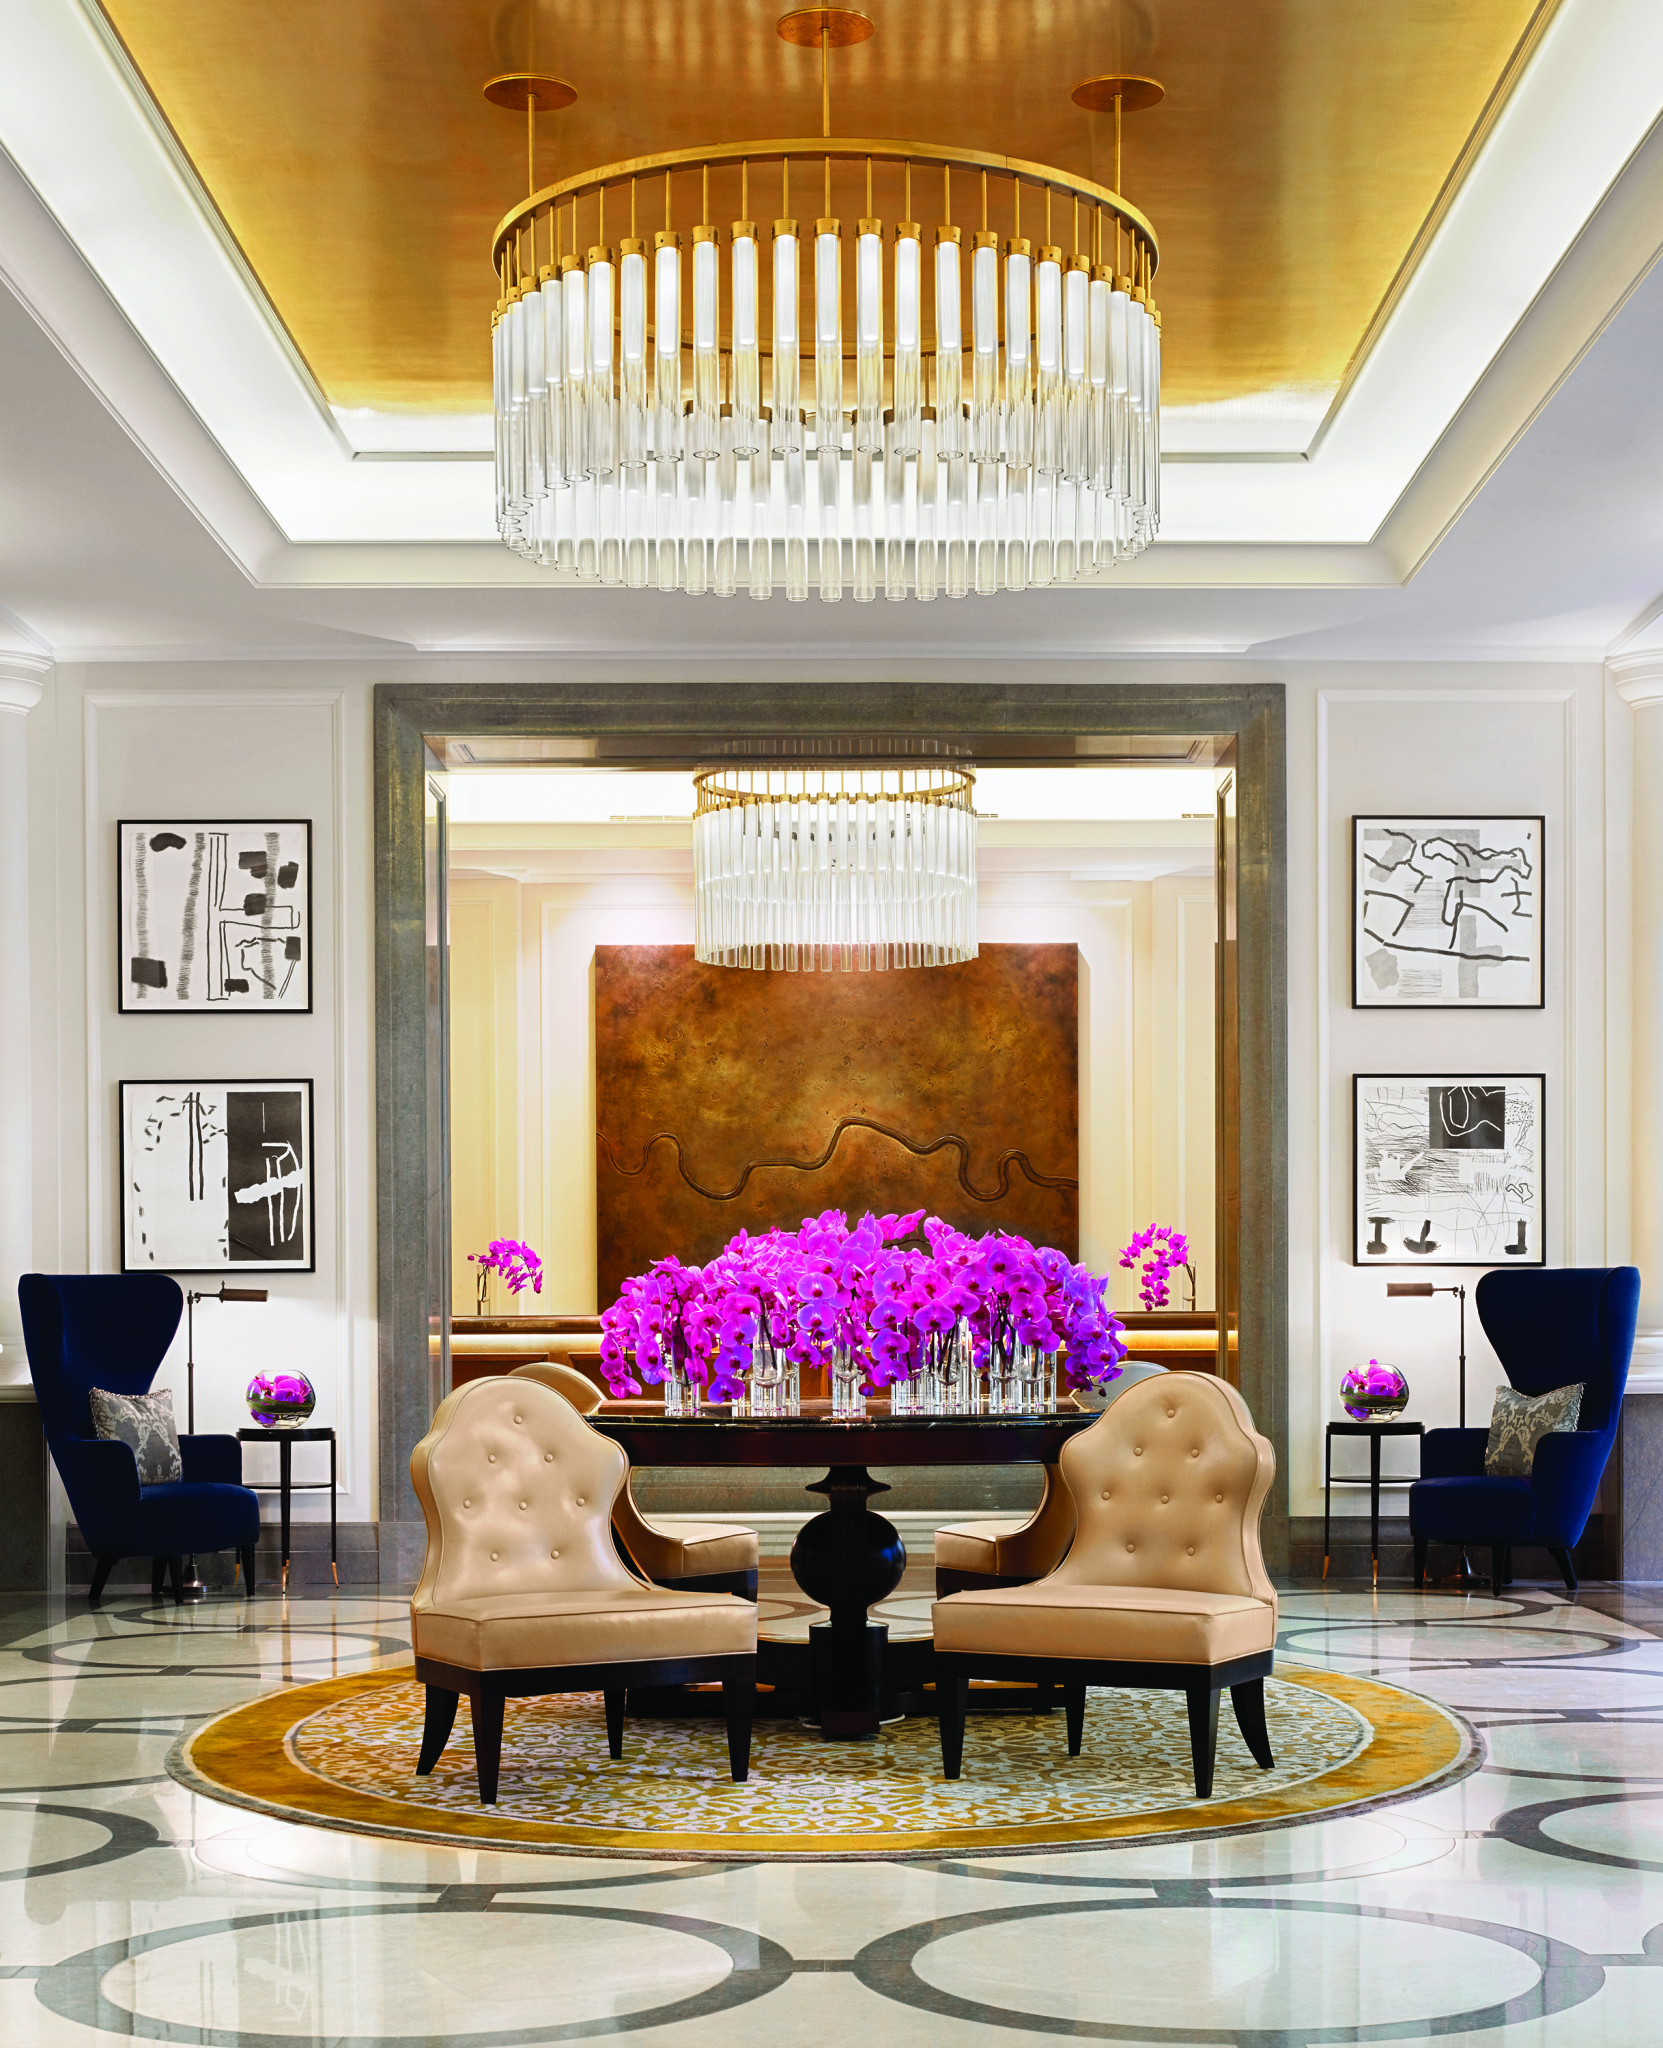 Royal weekend in corinthia hotel london the lux traveller for Designhotel london